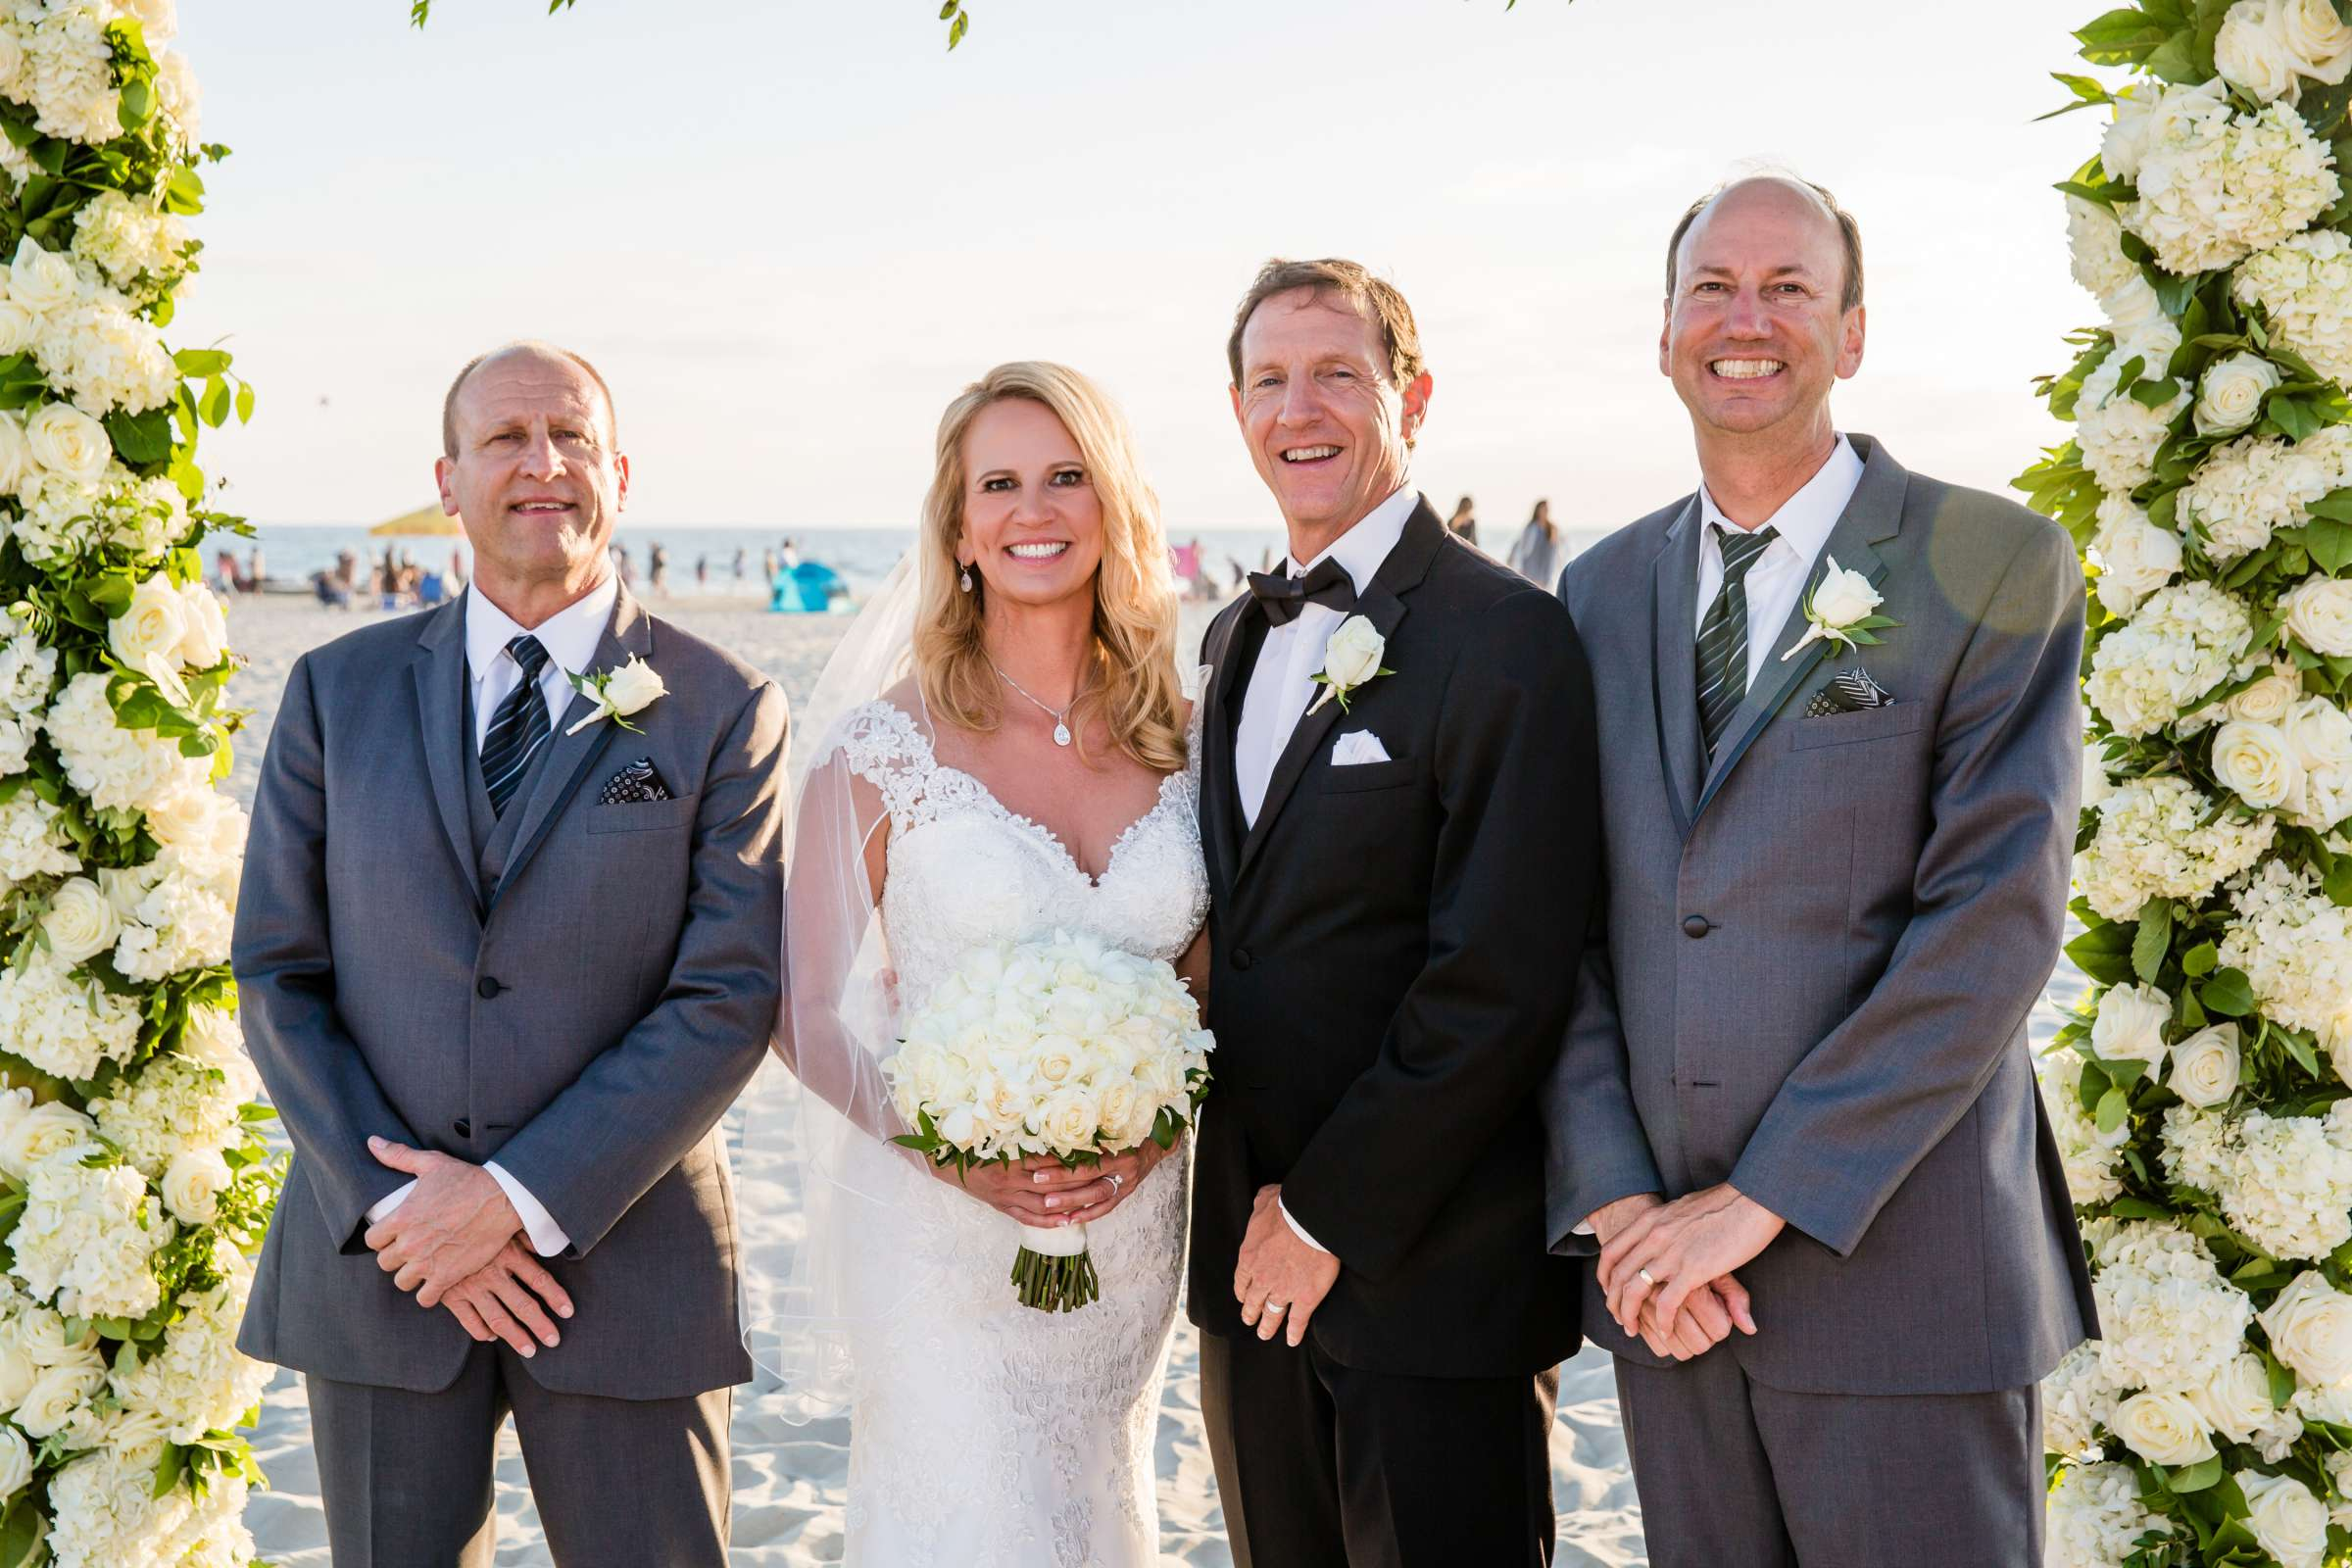 Hotel Del Coronado Wedding coordinated by Creative Affairs Inc, Diane and Paul Wedding Photo #73 by True Photography